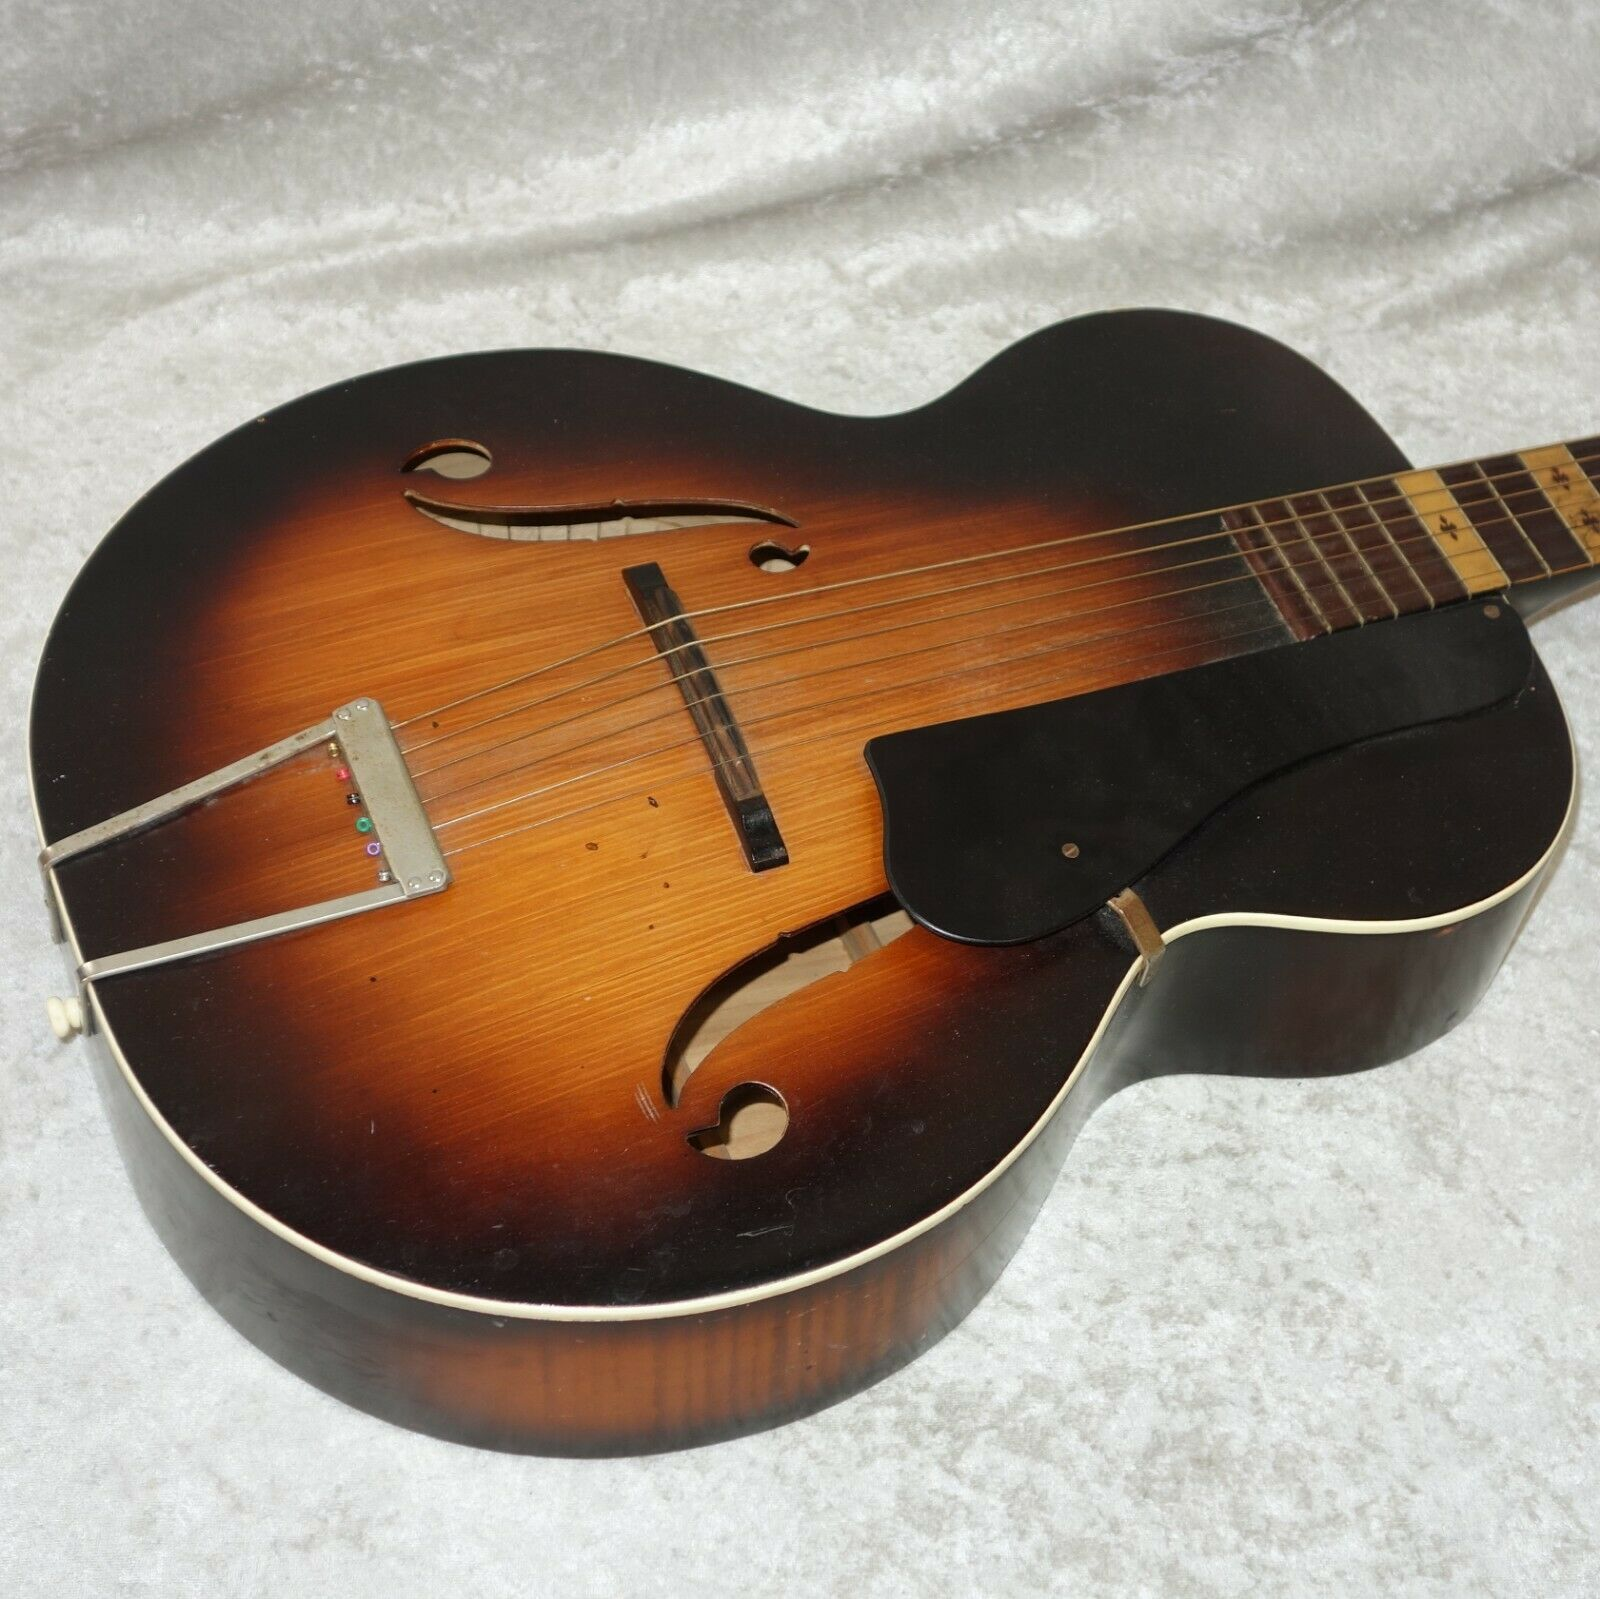 Melody King hollow body arch top acoustic guitar